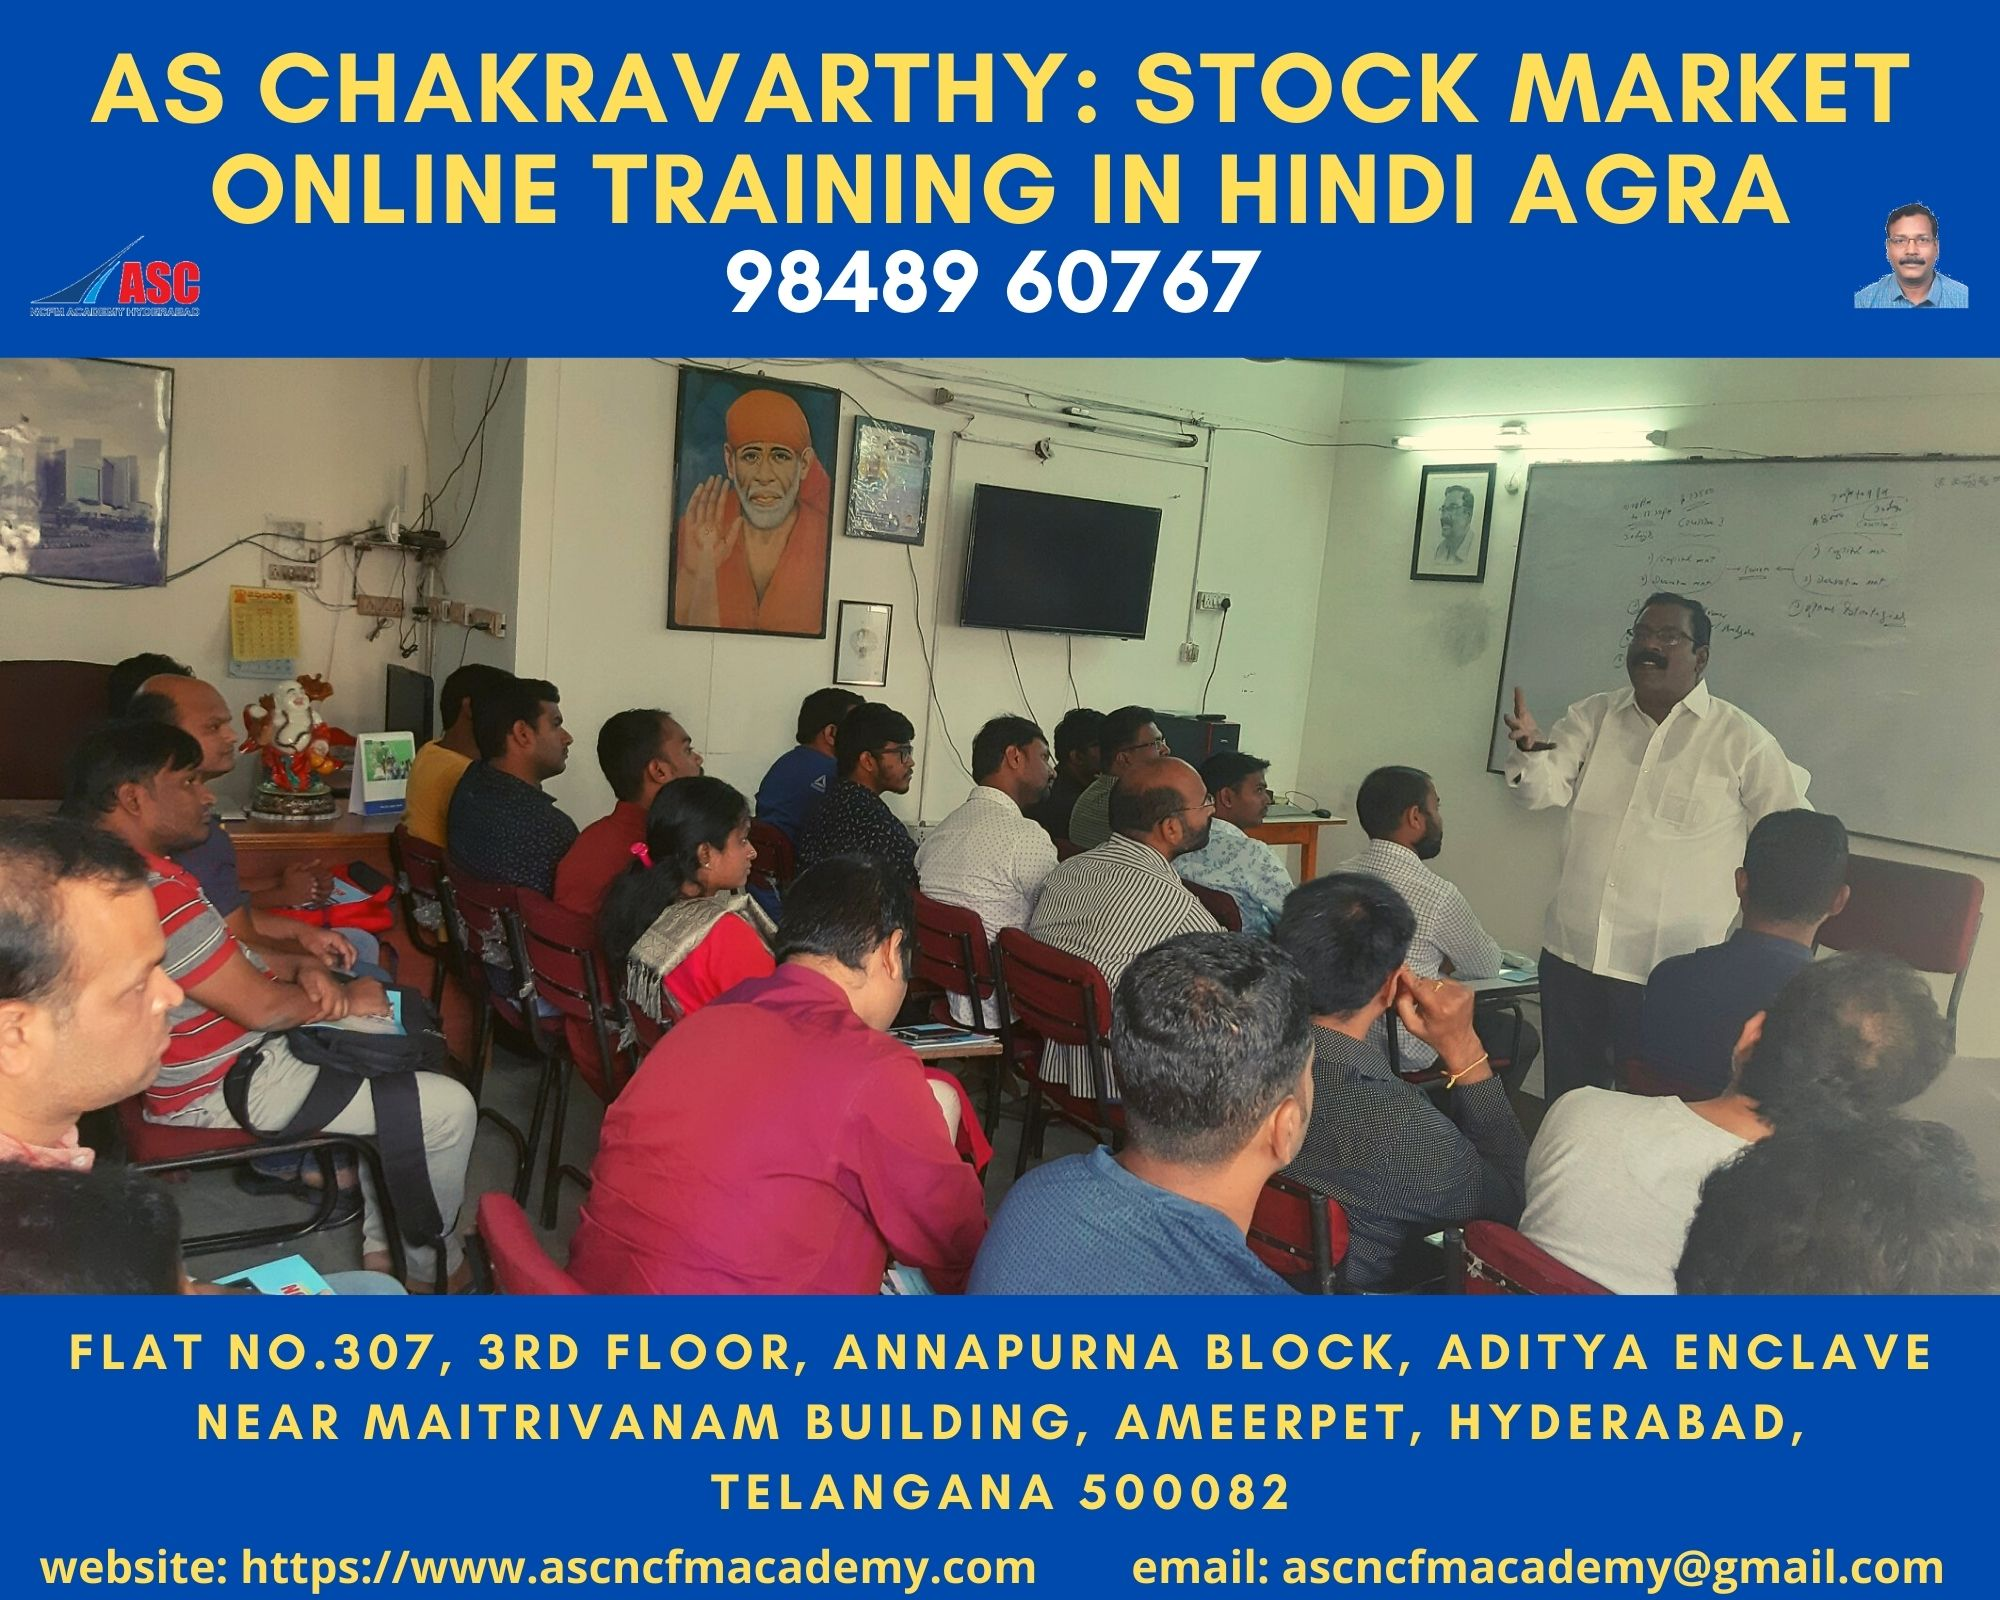 Online Stock Market Technical Training in Hindi Agra